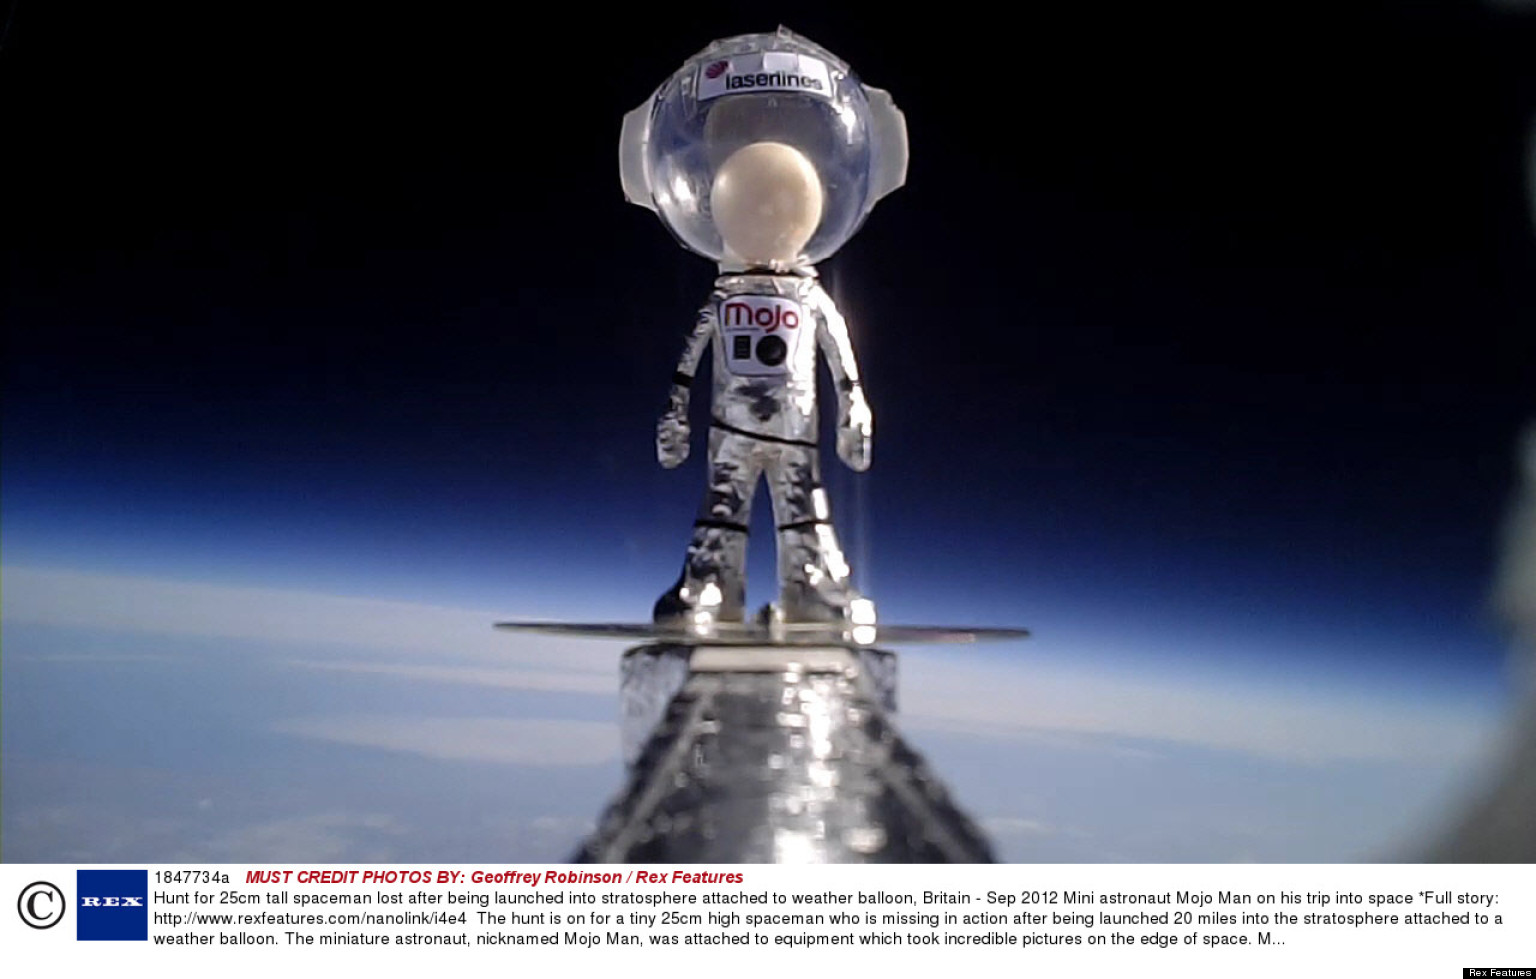 Tiny Astronaut 'Mojo Man' Lost After Mission To The Edge ...